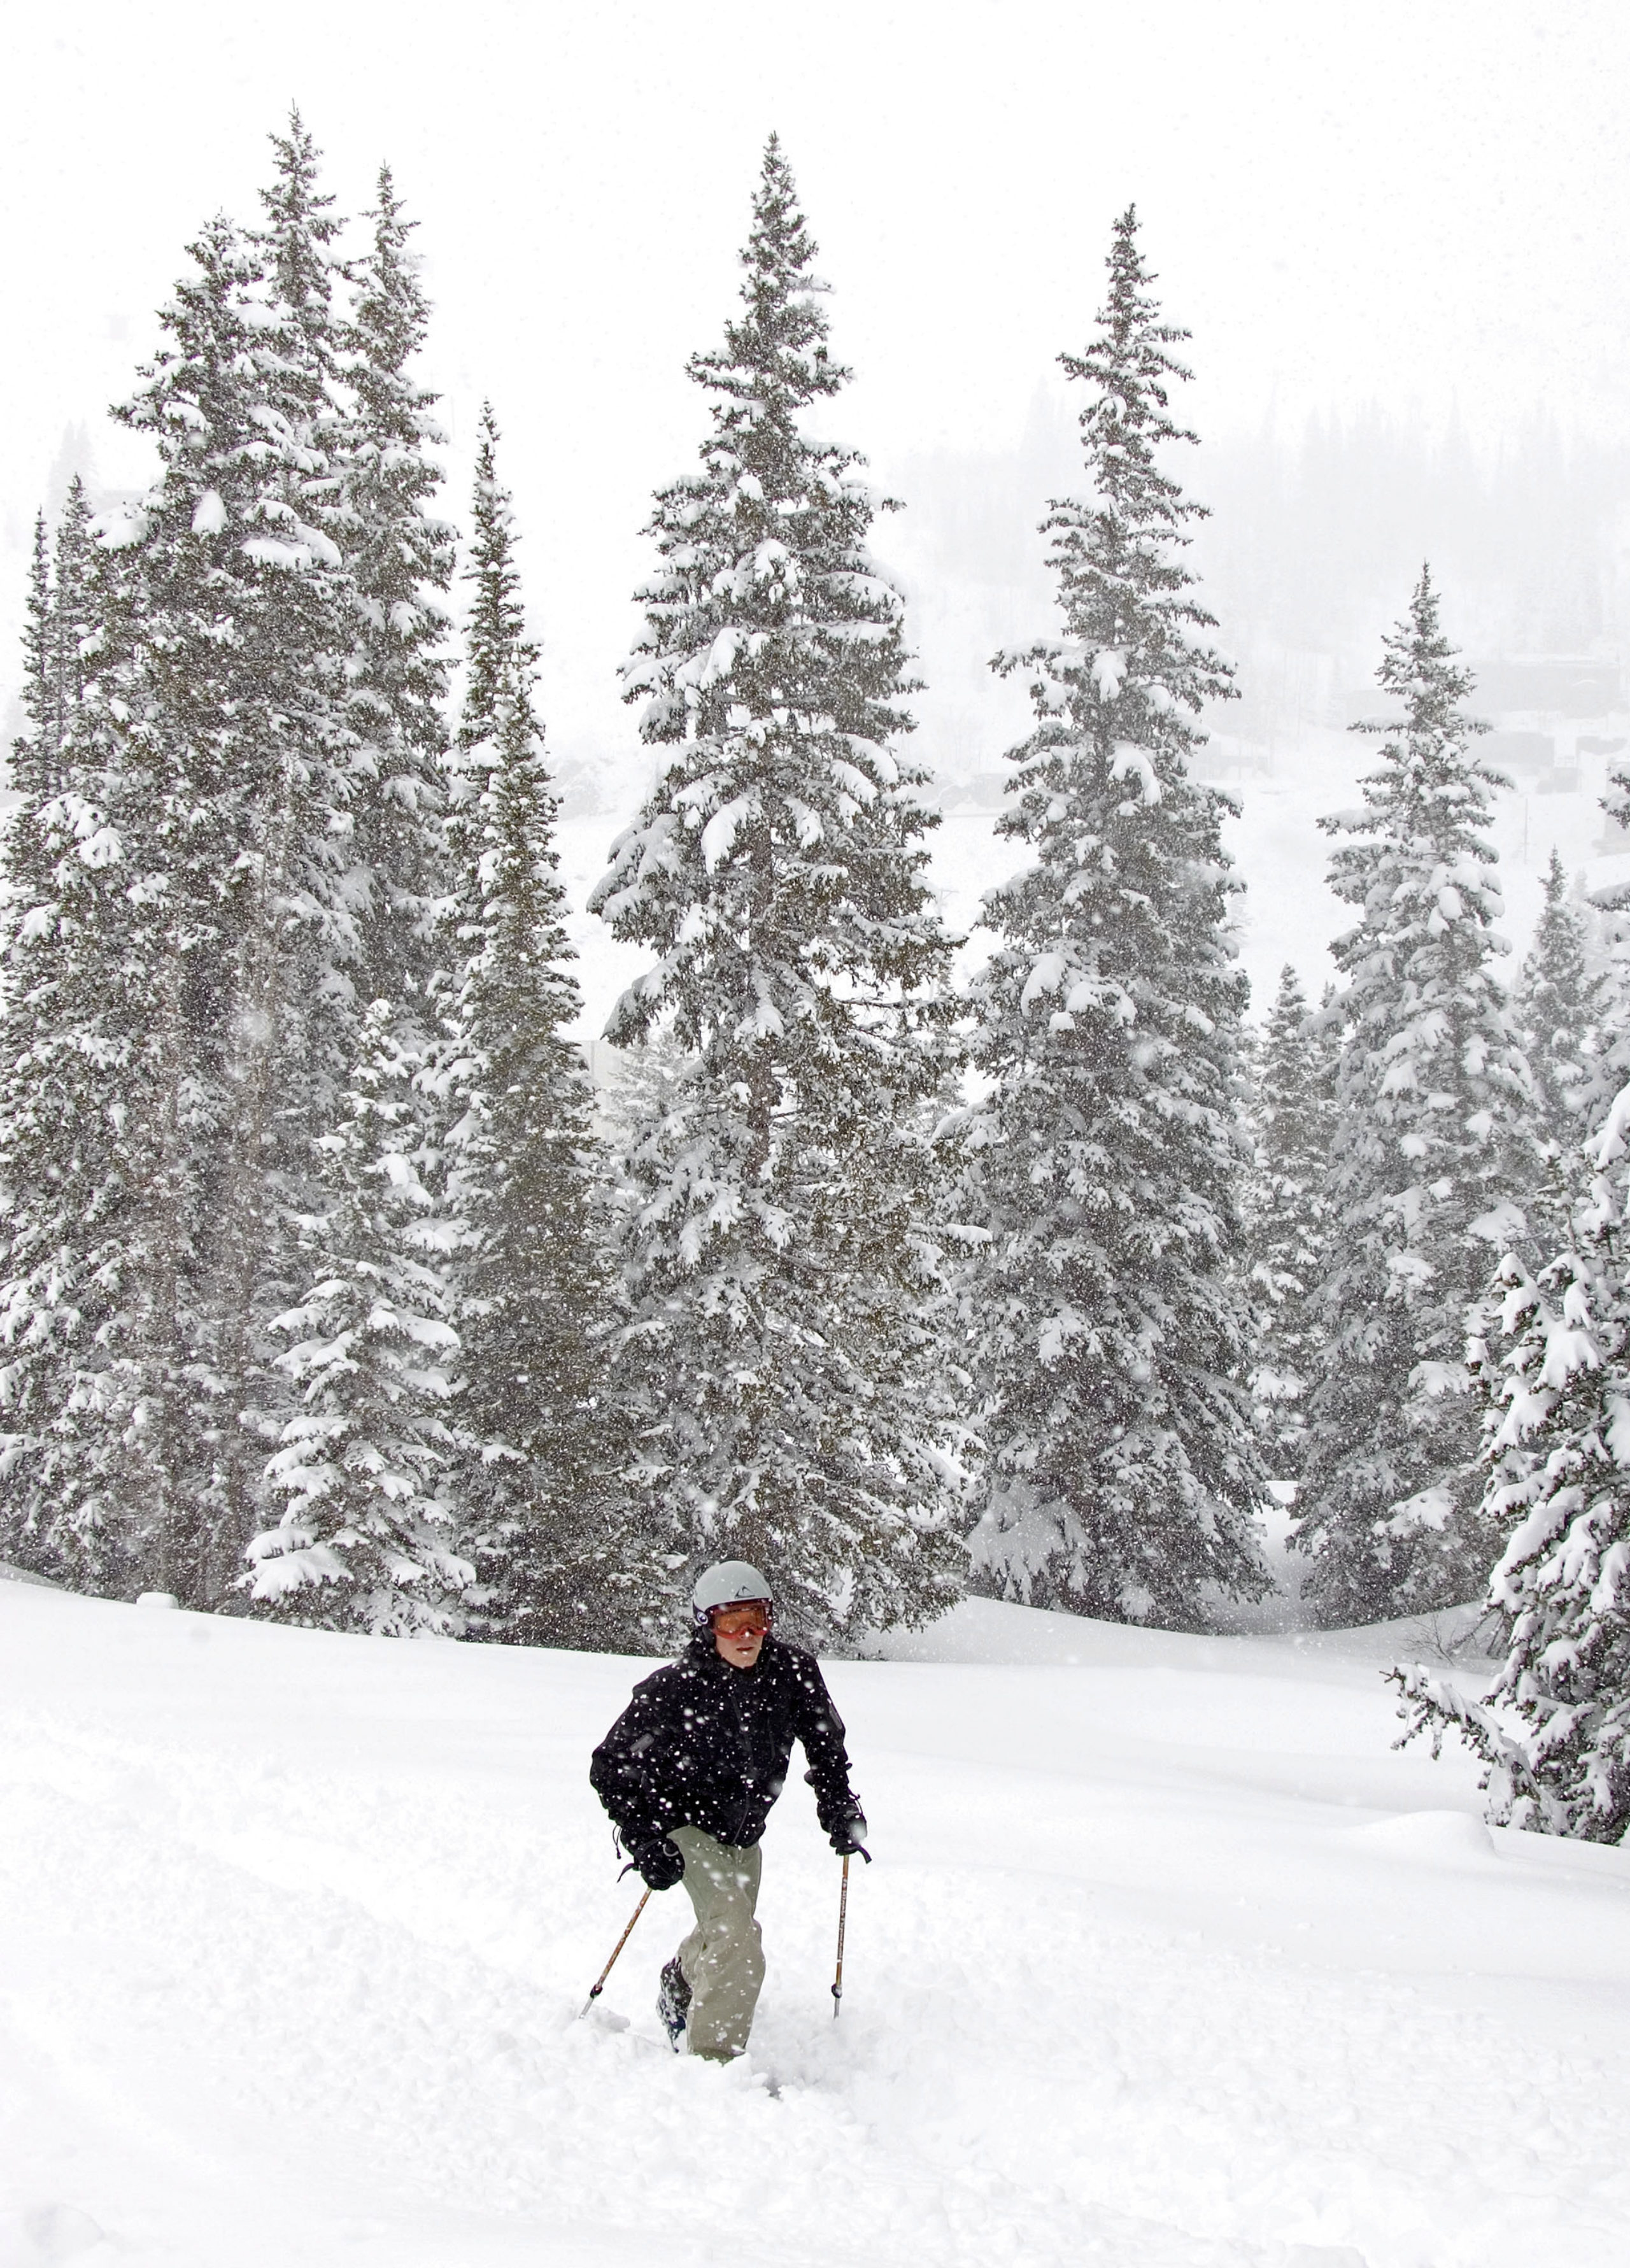 ALTA, UTAH - MAY 11: Matt Johnson from New Hampshire enjoys mid-winter like ski conditions as he makes his way through almost two feet of new snow that blanketed May 11, 2005 in Alta, Utah. There is already 178 inches of snow at mid-mountain at Alta and Utah officials are worried that severe flooding will occur when warmer weather hits. Normally the snow starts to melt the first part of April with the majority of it gone by this time of year. (Photo by George Frey/Getty Images)